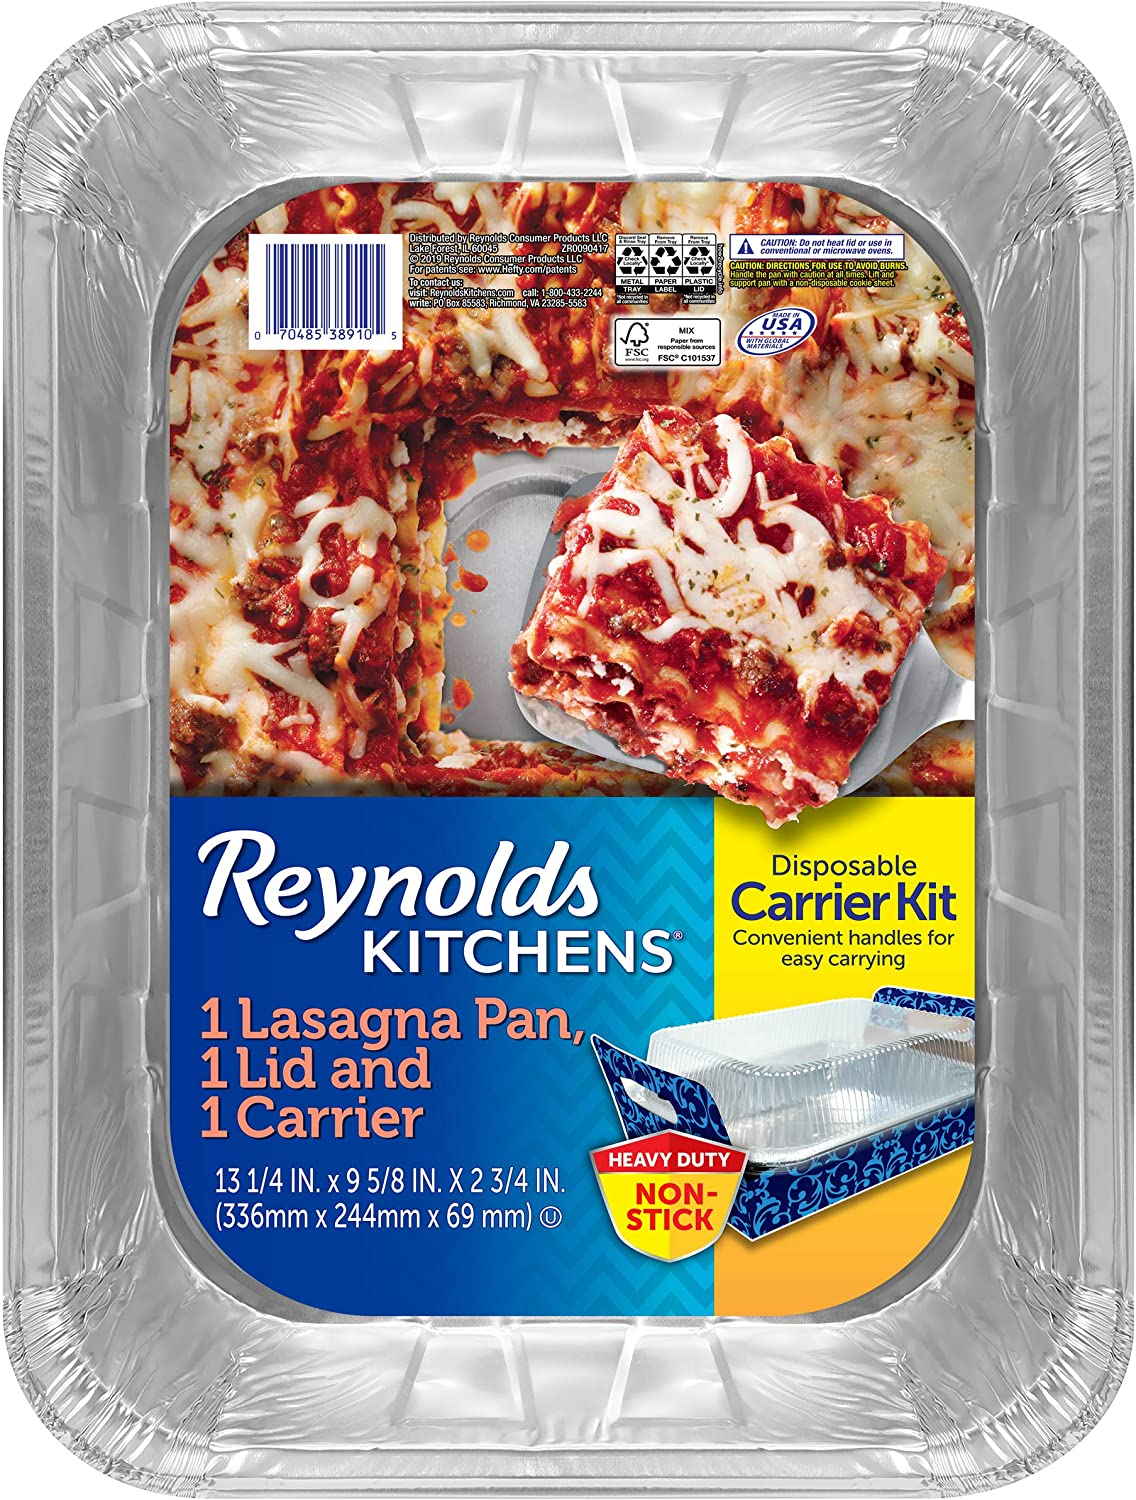 "Reynolds Disposable Lasagna Pans with Carriers & Lids - 13 1/4 X 9 5/8 X 2 3/4"", 3 Count"